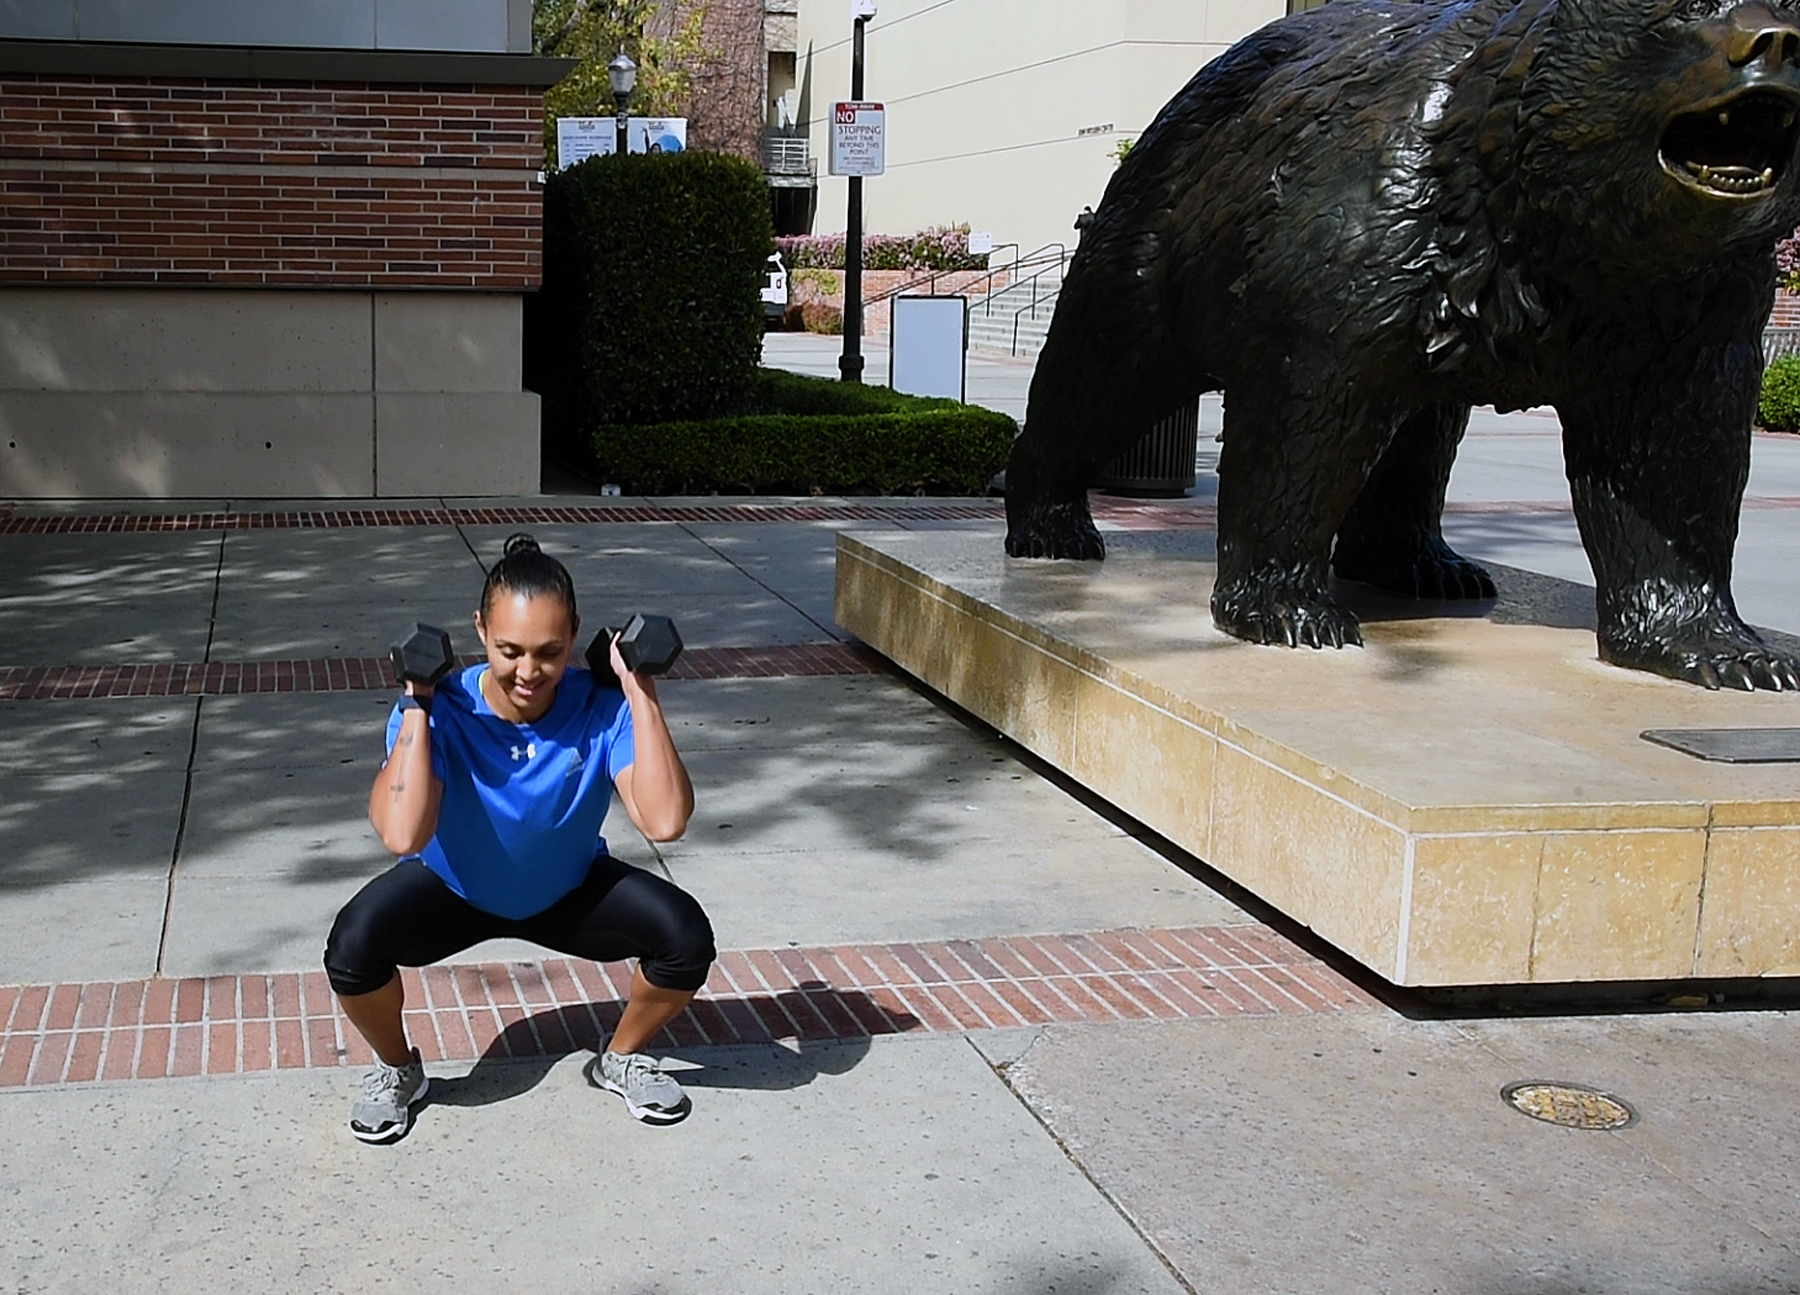 Exerciser next to The Bruin statue